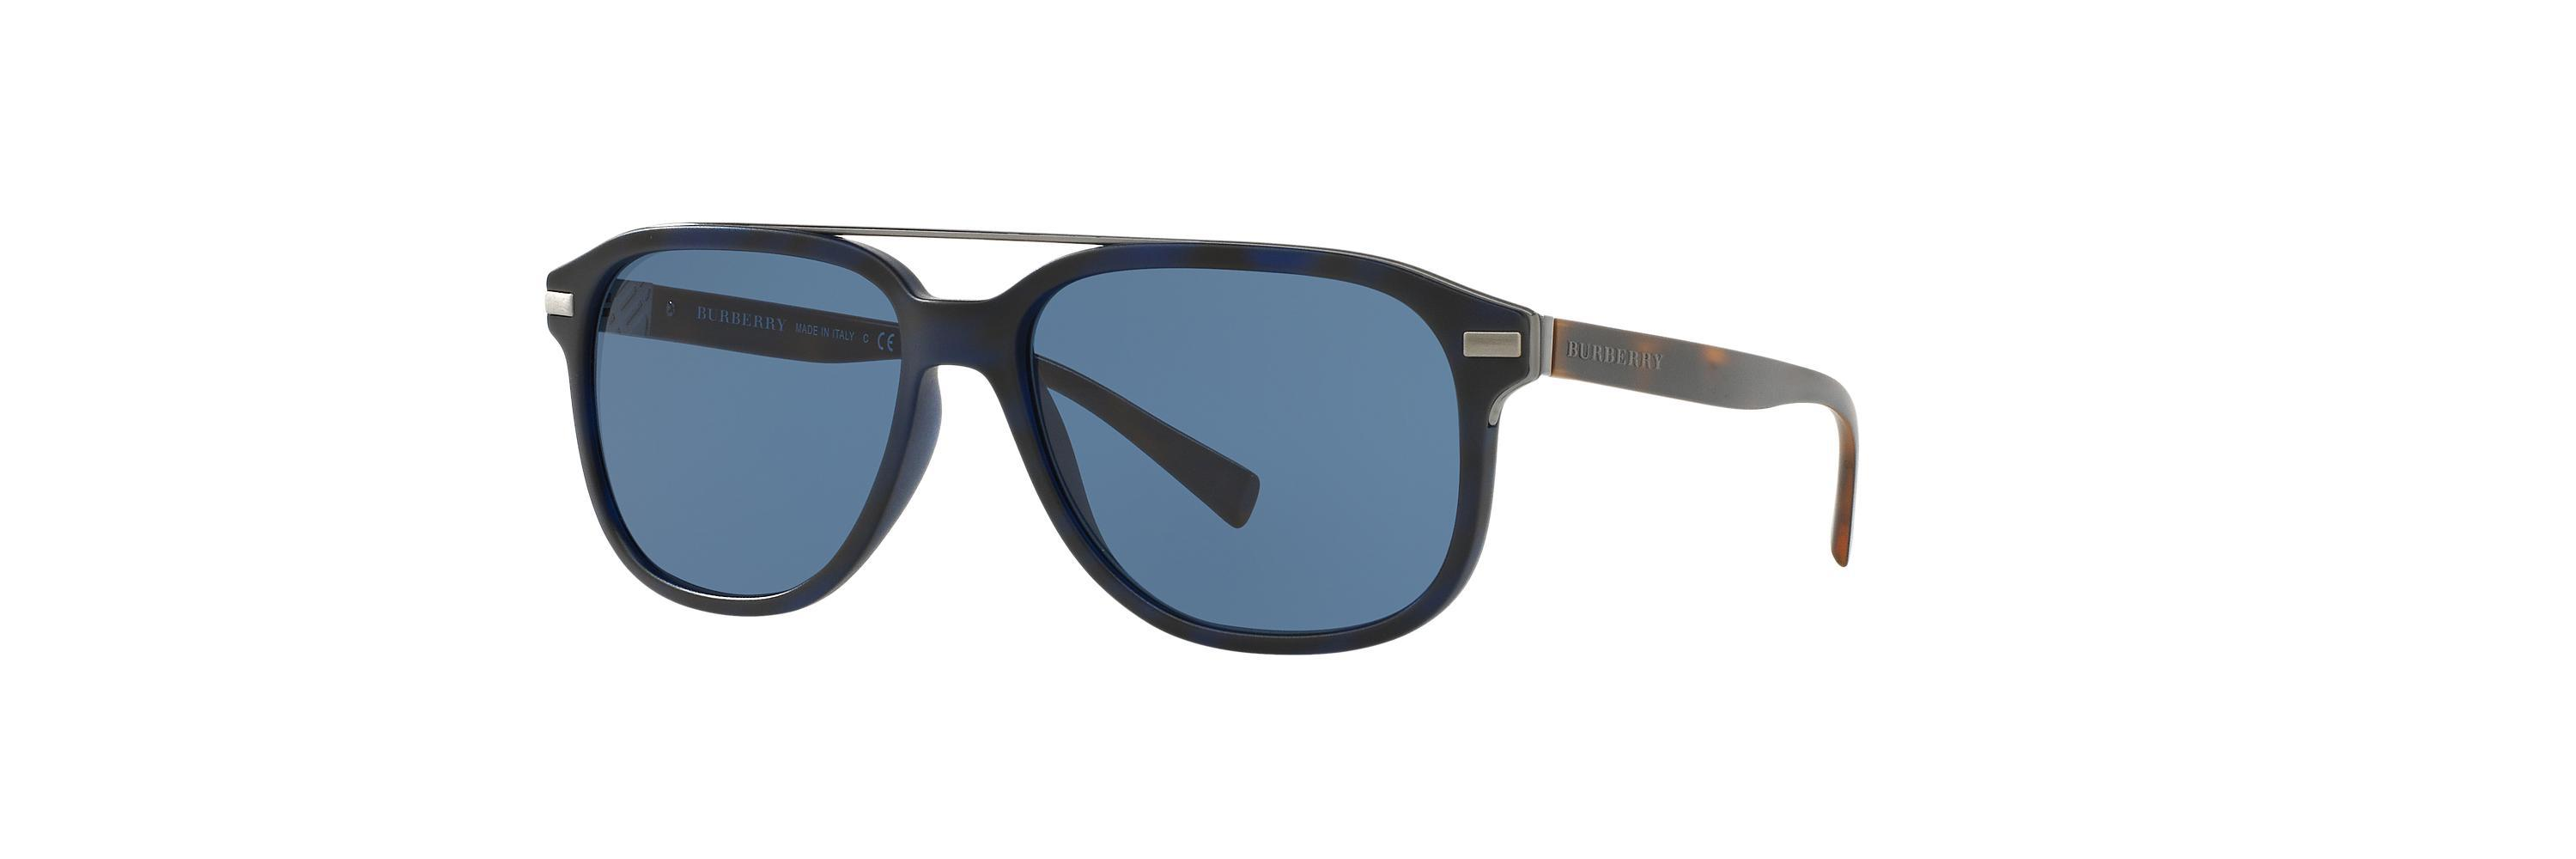 5448f0ec62d Burberry Be4233 57 in Blue for Men - Lyst